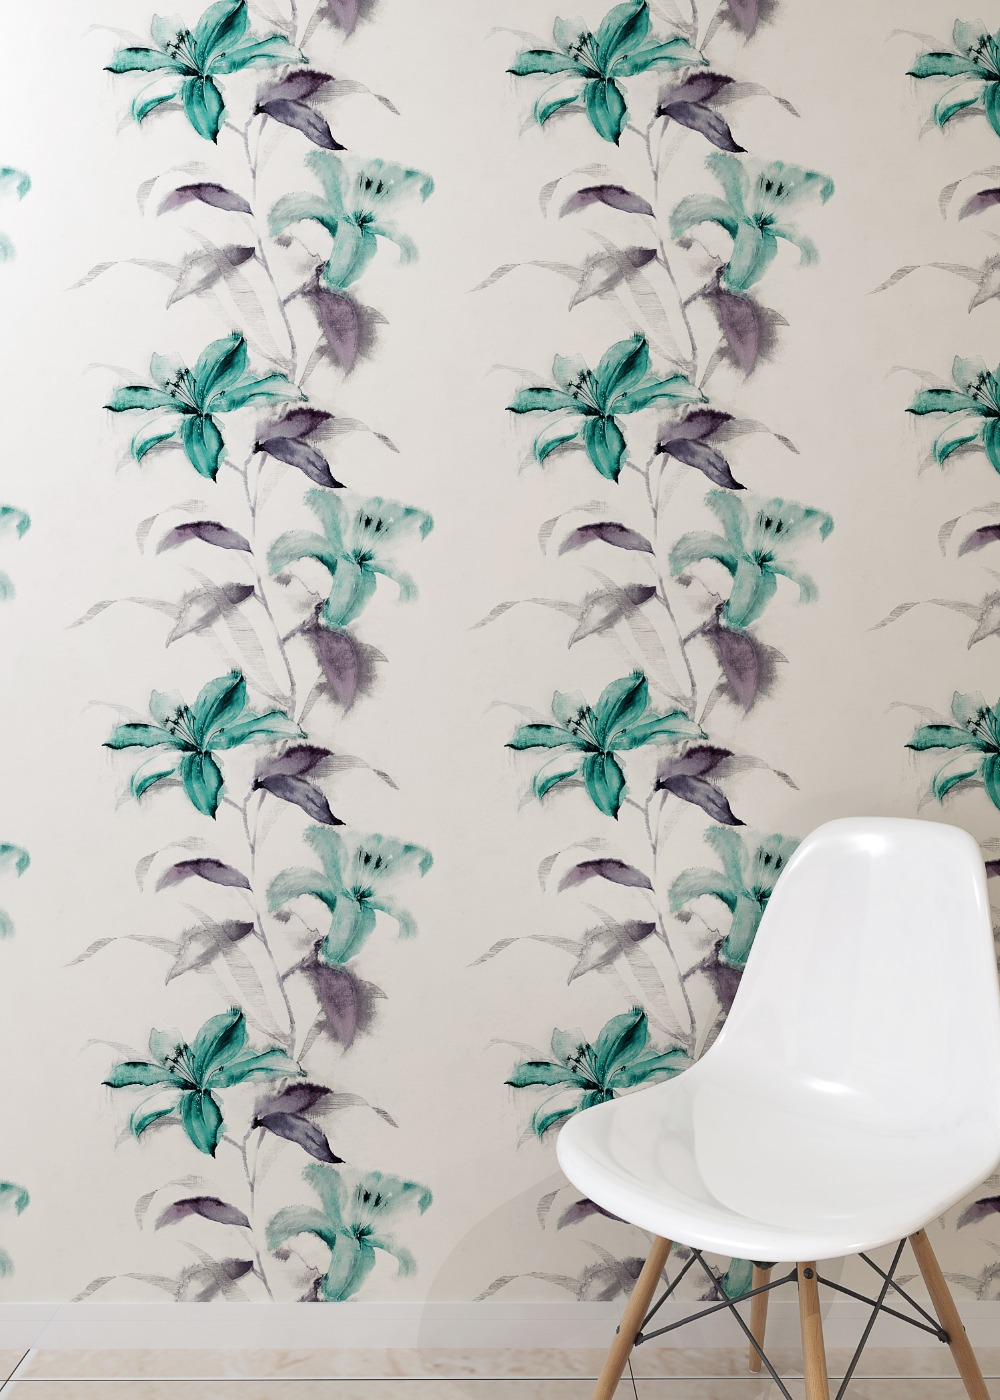 Lily Summer Florals Mural Wallpaper  Roll PVC Background 10m Decor миска lily flower g2286 h4266